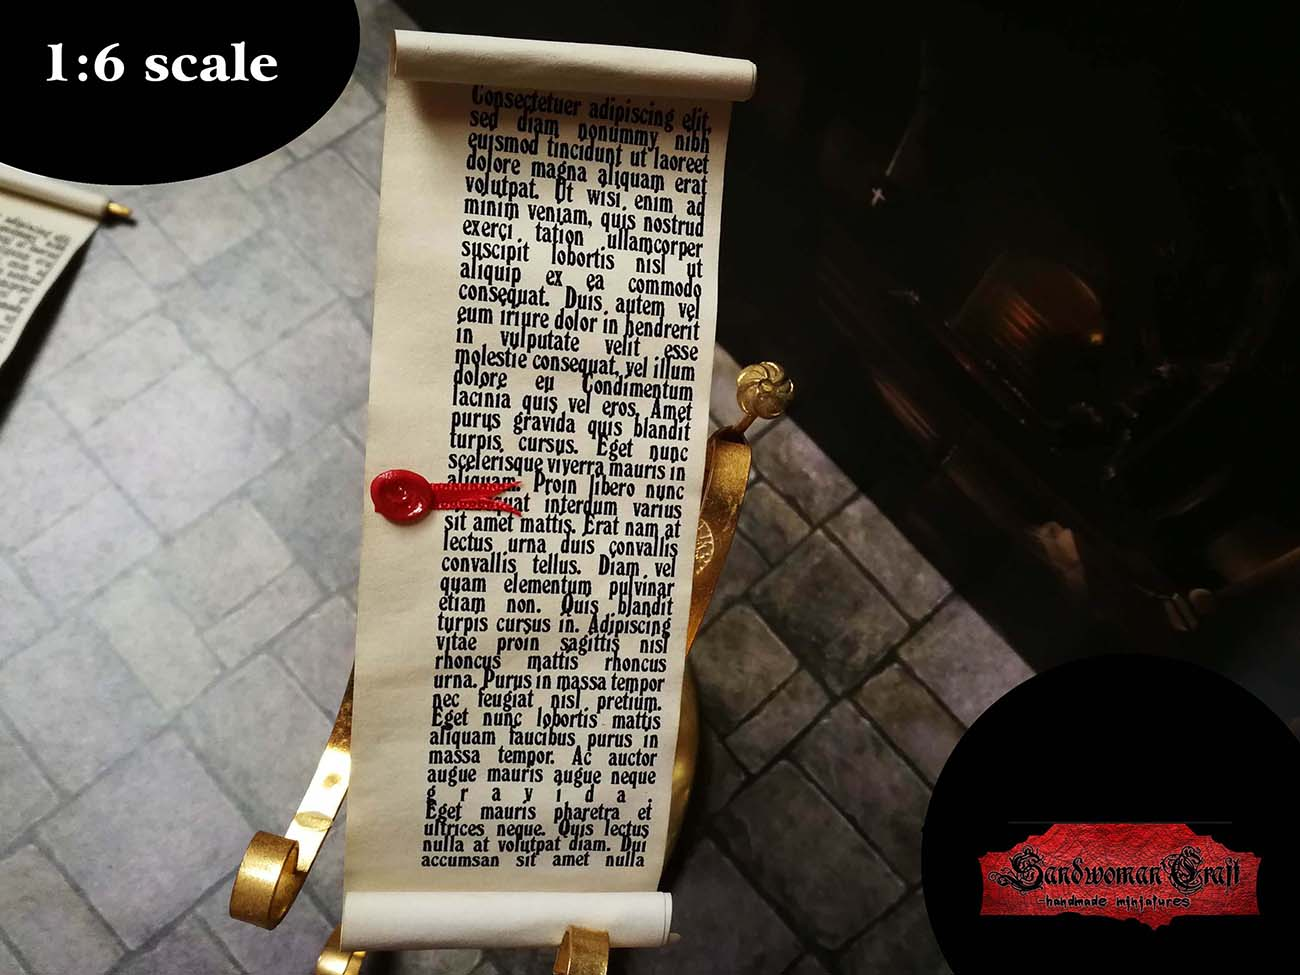 Miniature scrolls in 1:6 scale